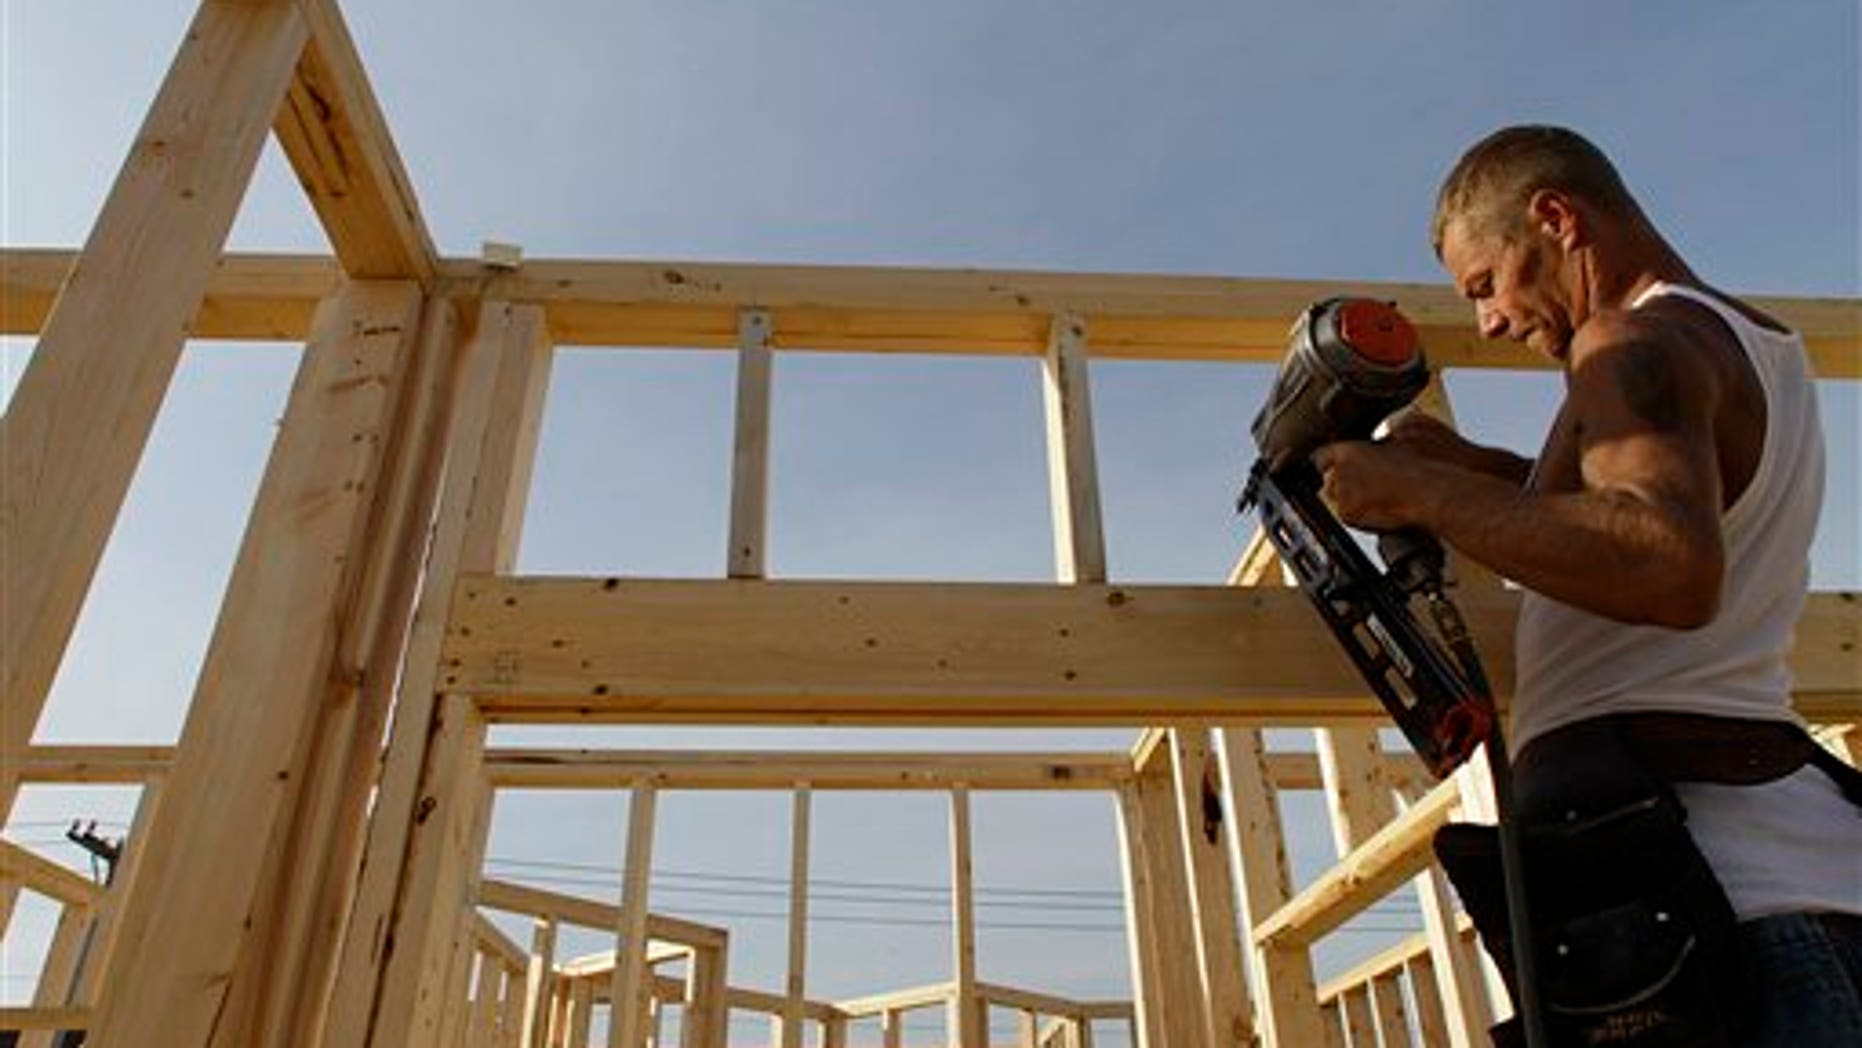 In this photo taken Sept, 13, 2010, construction worker Randy Shreves begins building a new residential home in Springfield, Ill. (AP Photo/Seth Perlman)